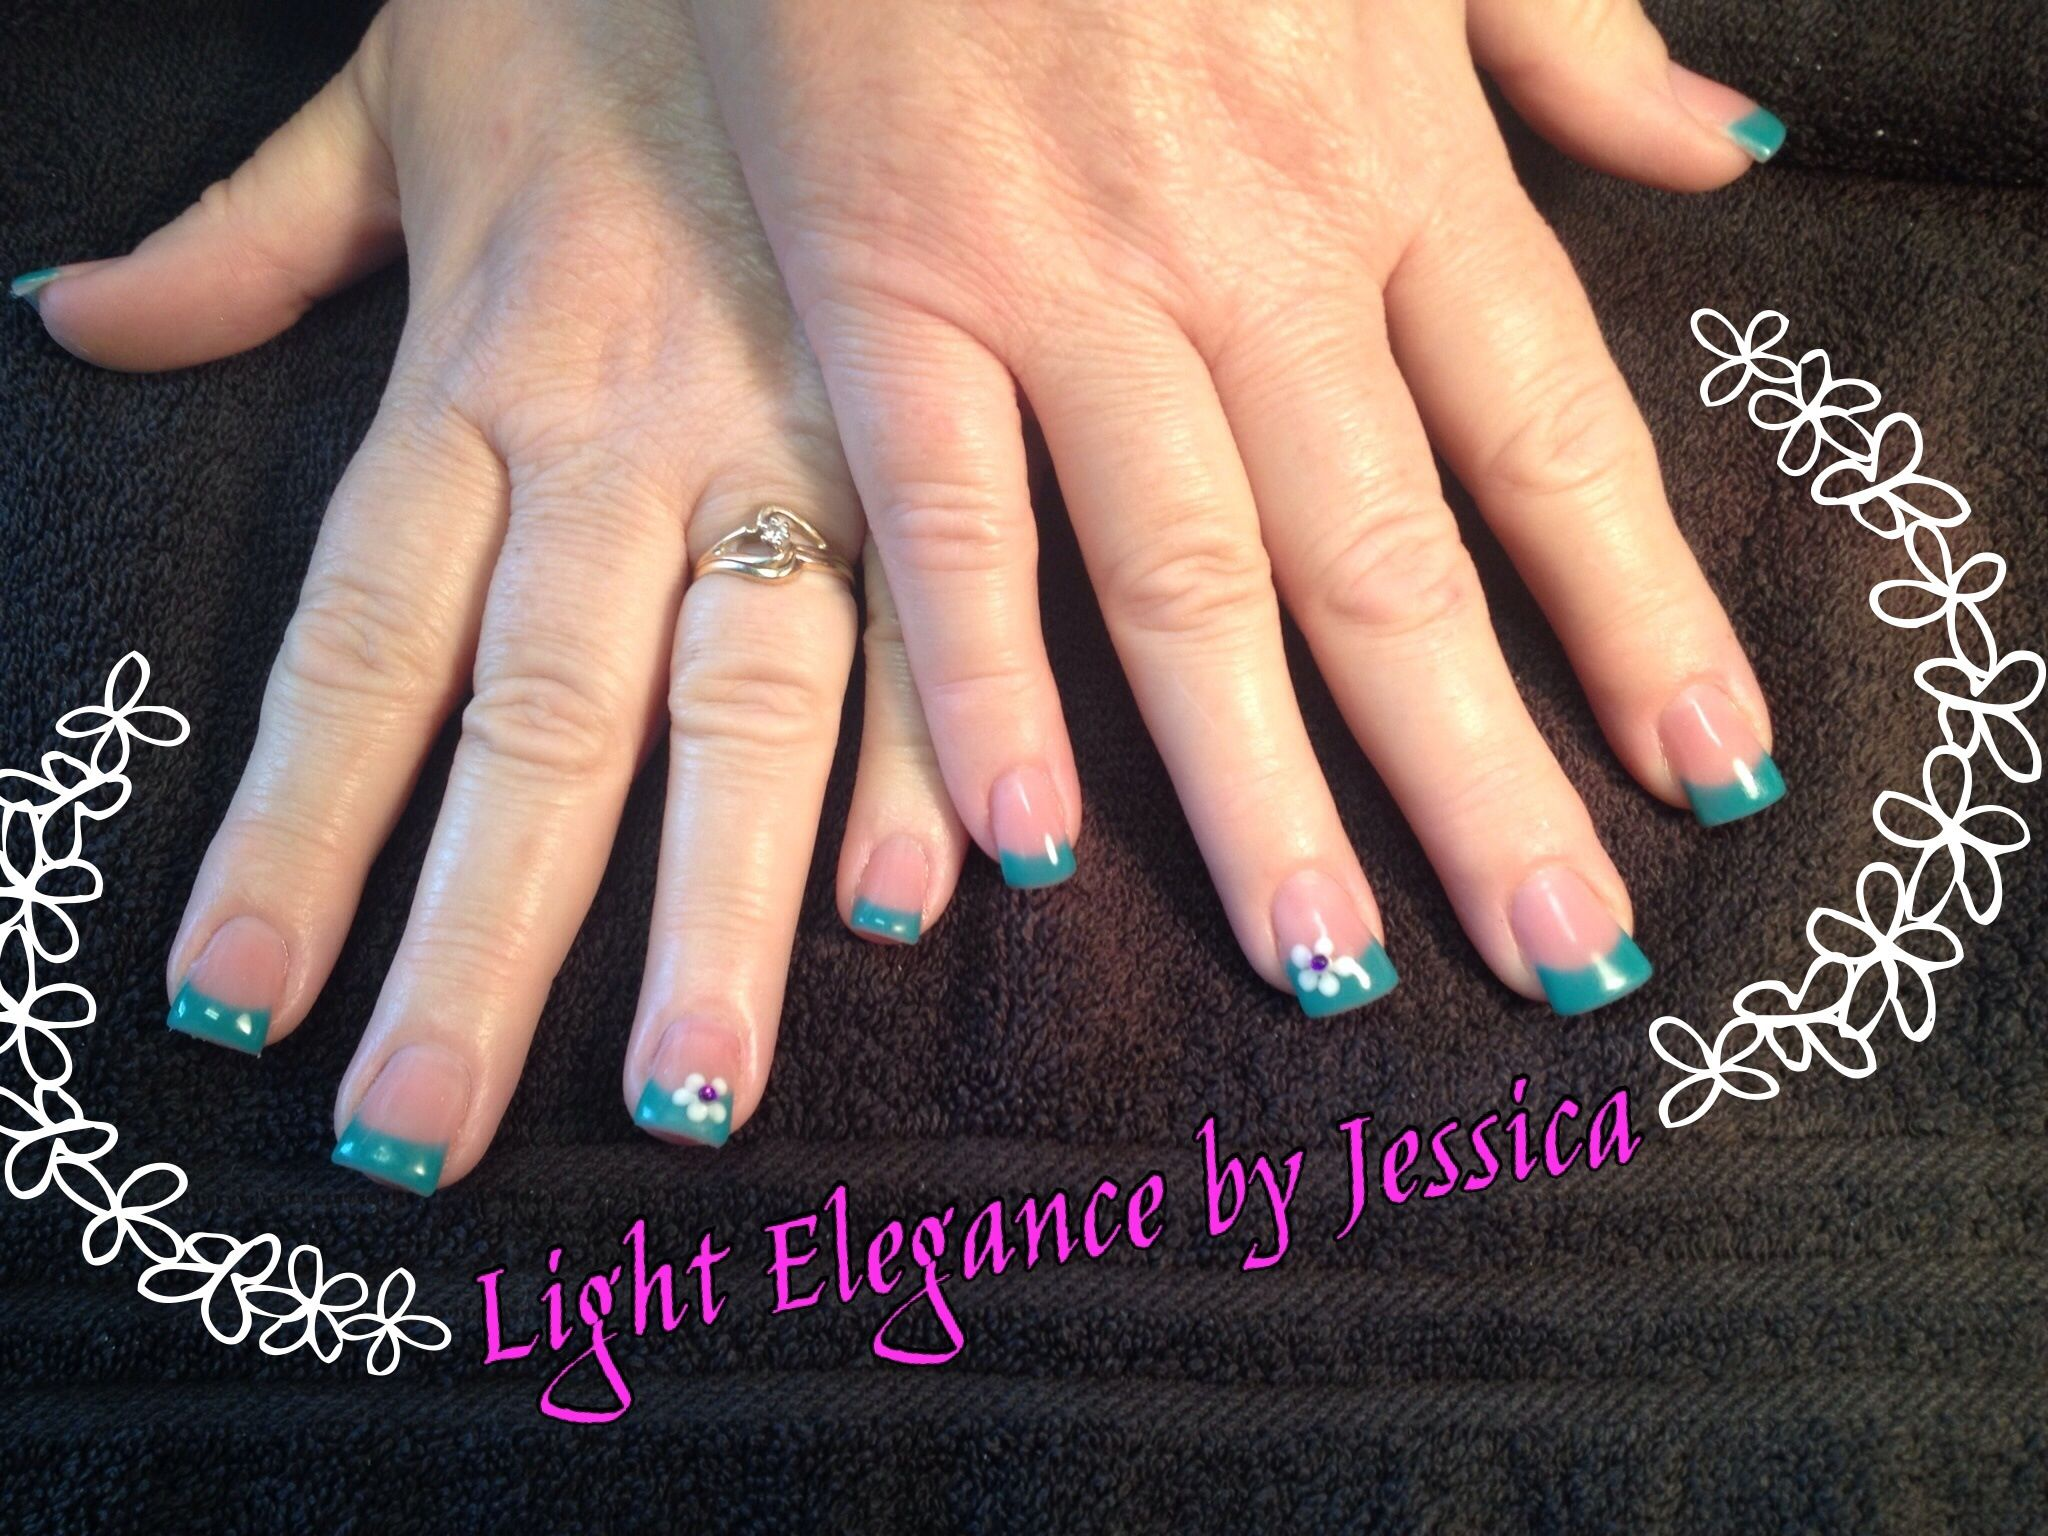 Light Elegance by Jessica in Salem Oregon. Nail art, flower, pedal ...